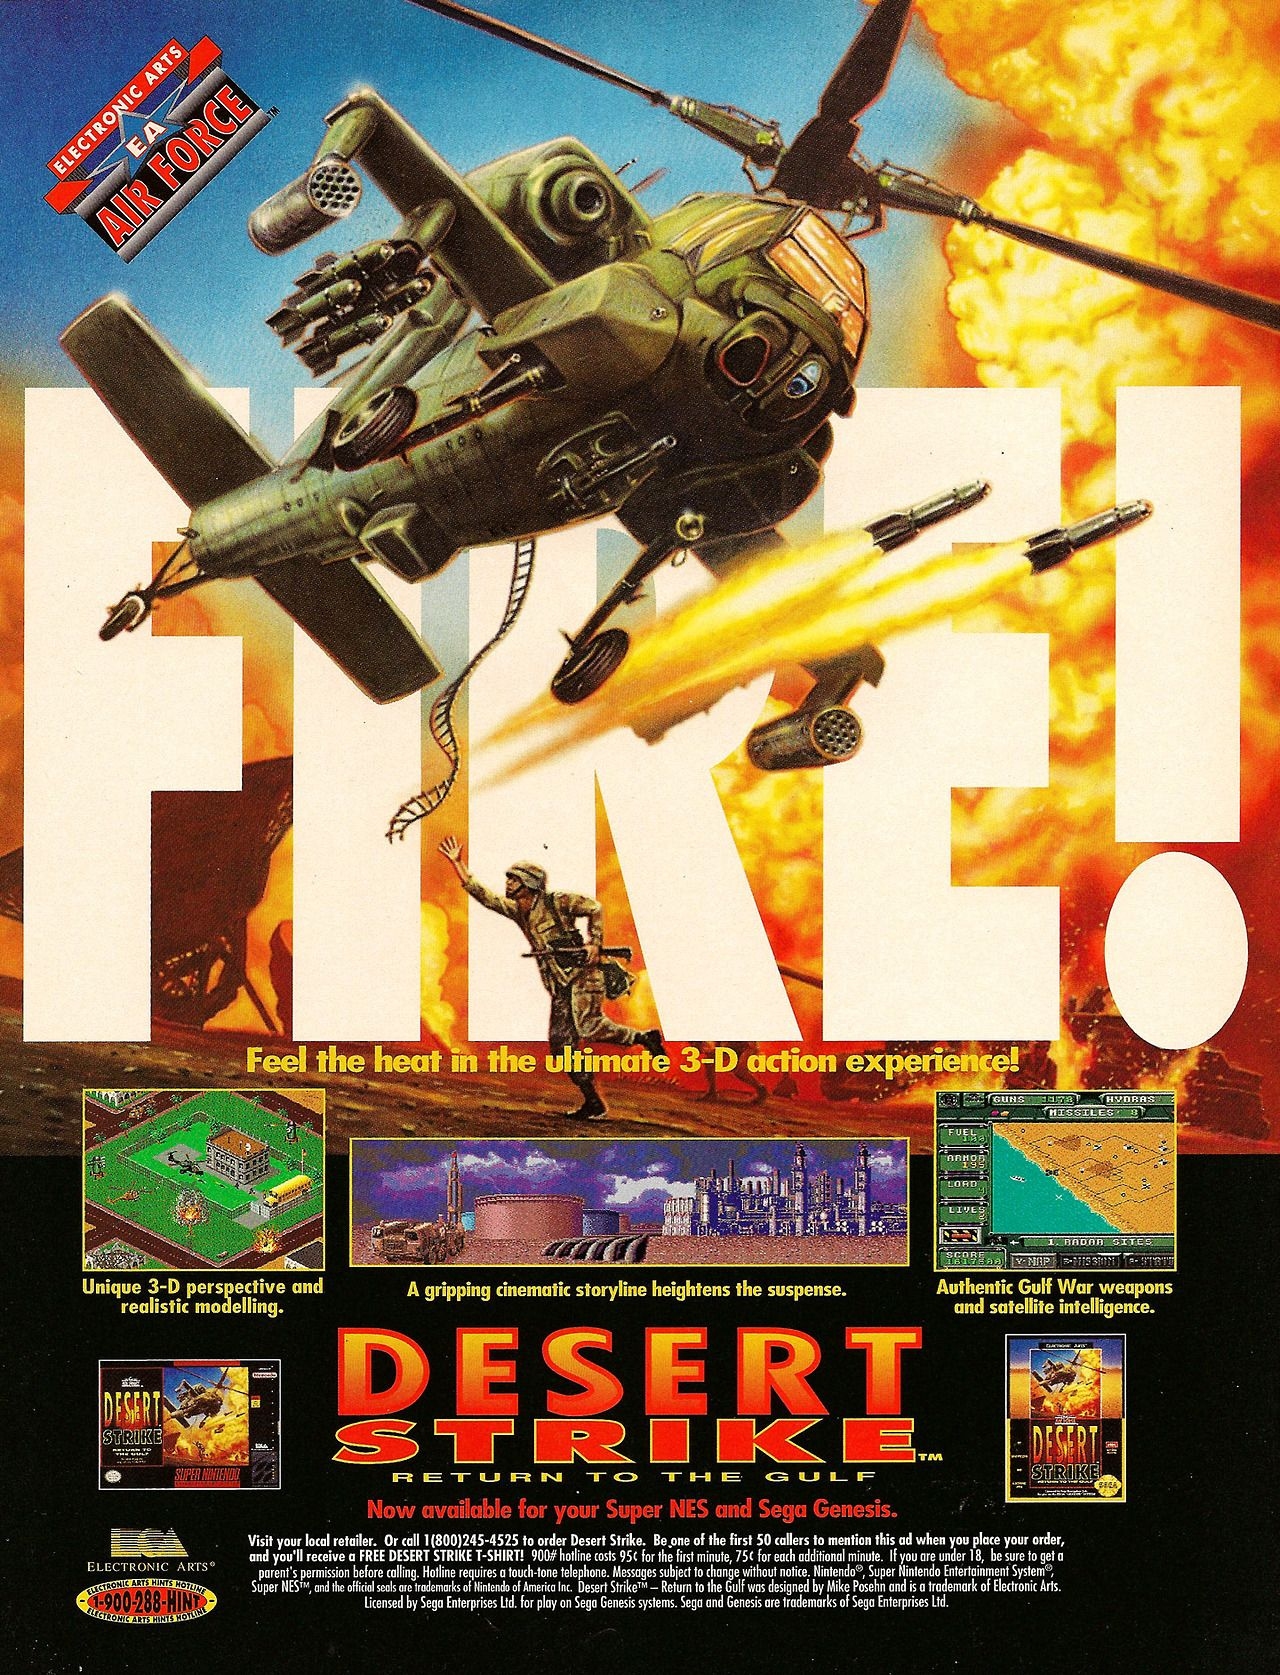 An Advert For Desert Strike On The Snes And Genesis Video Game